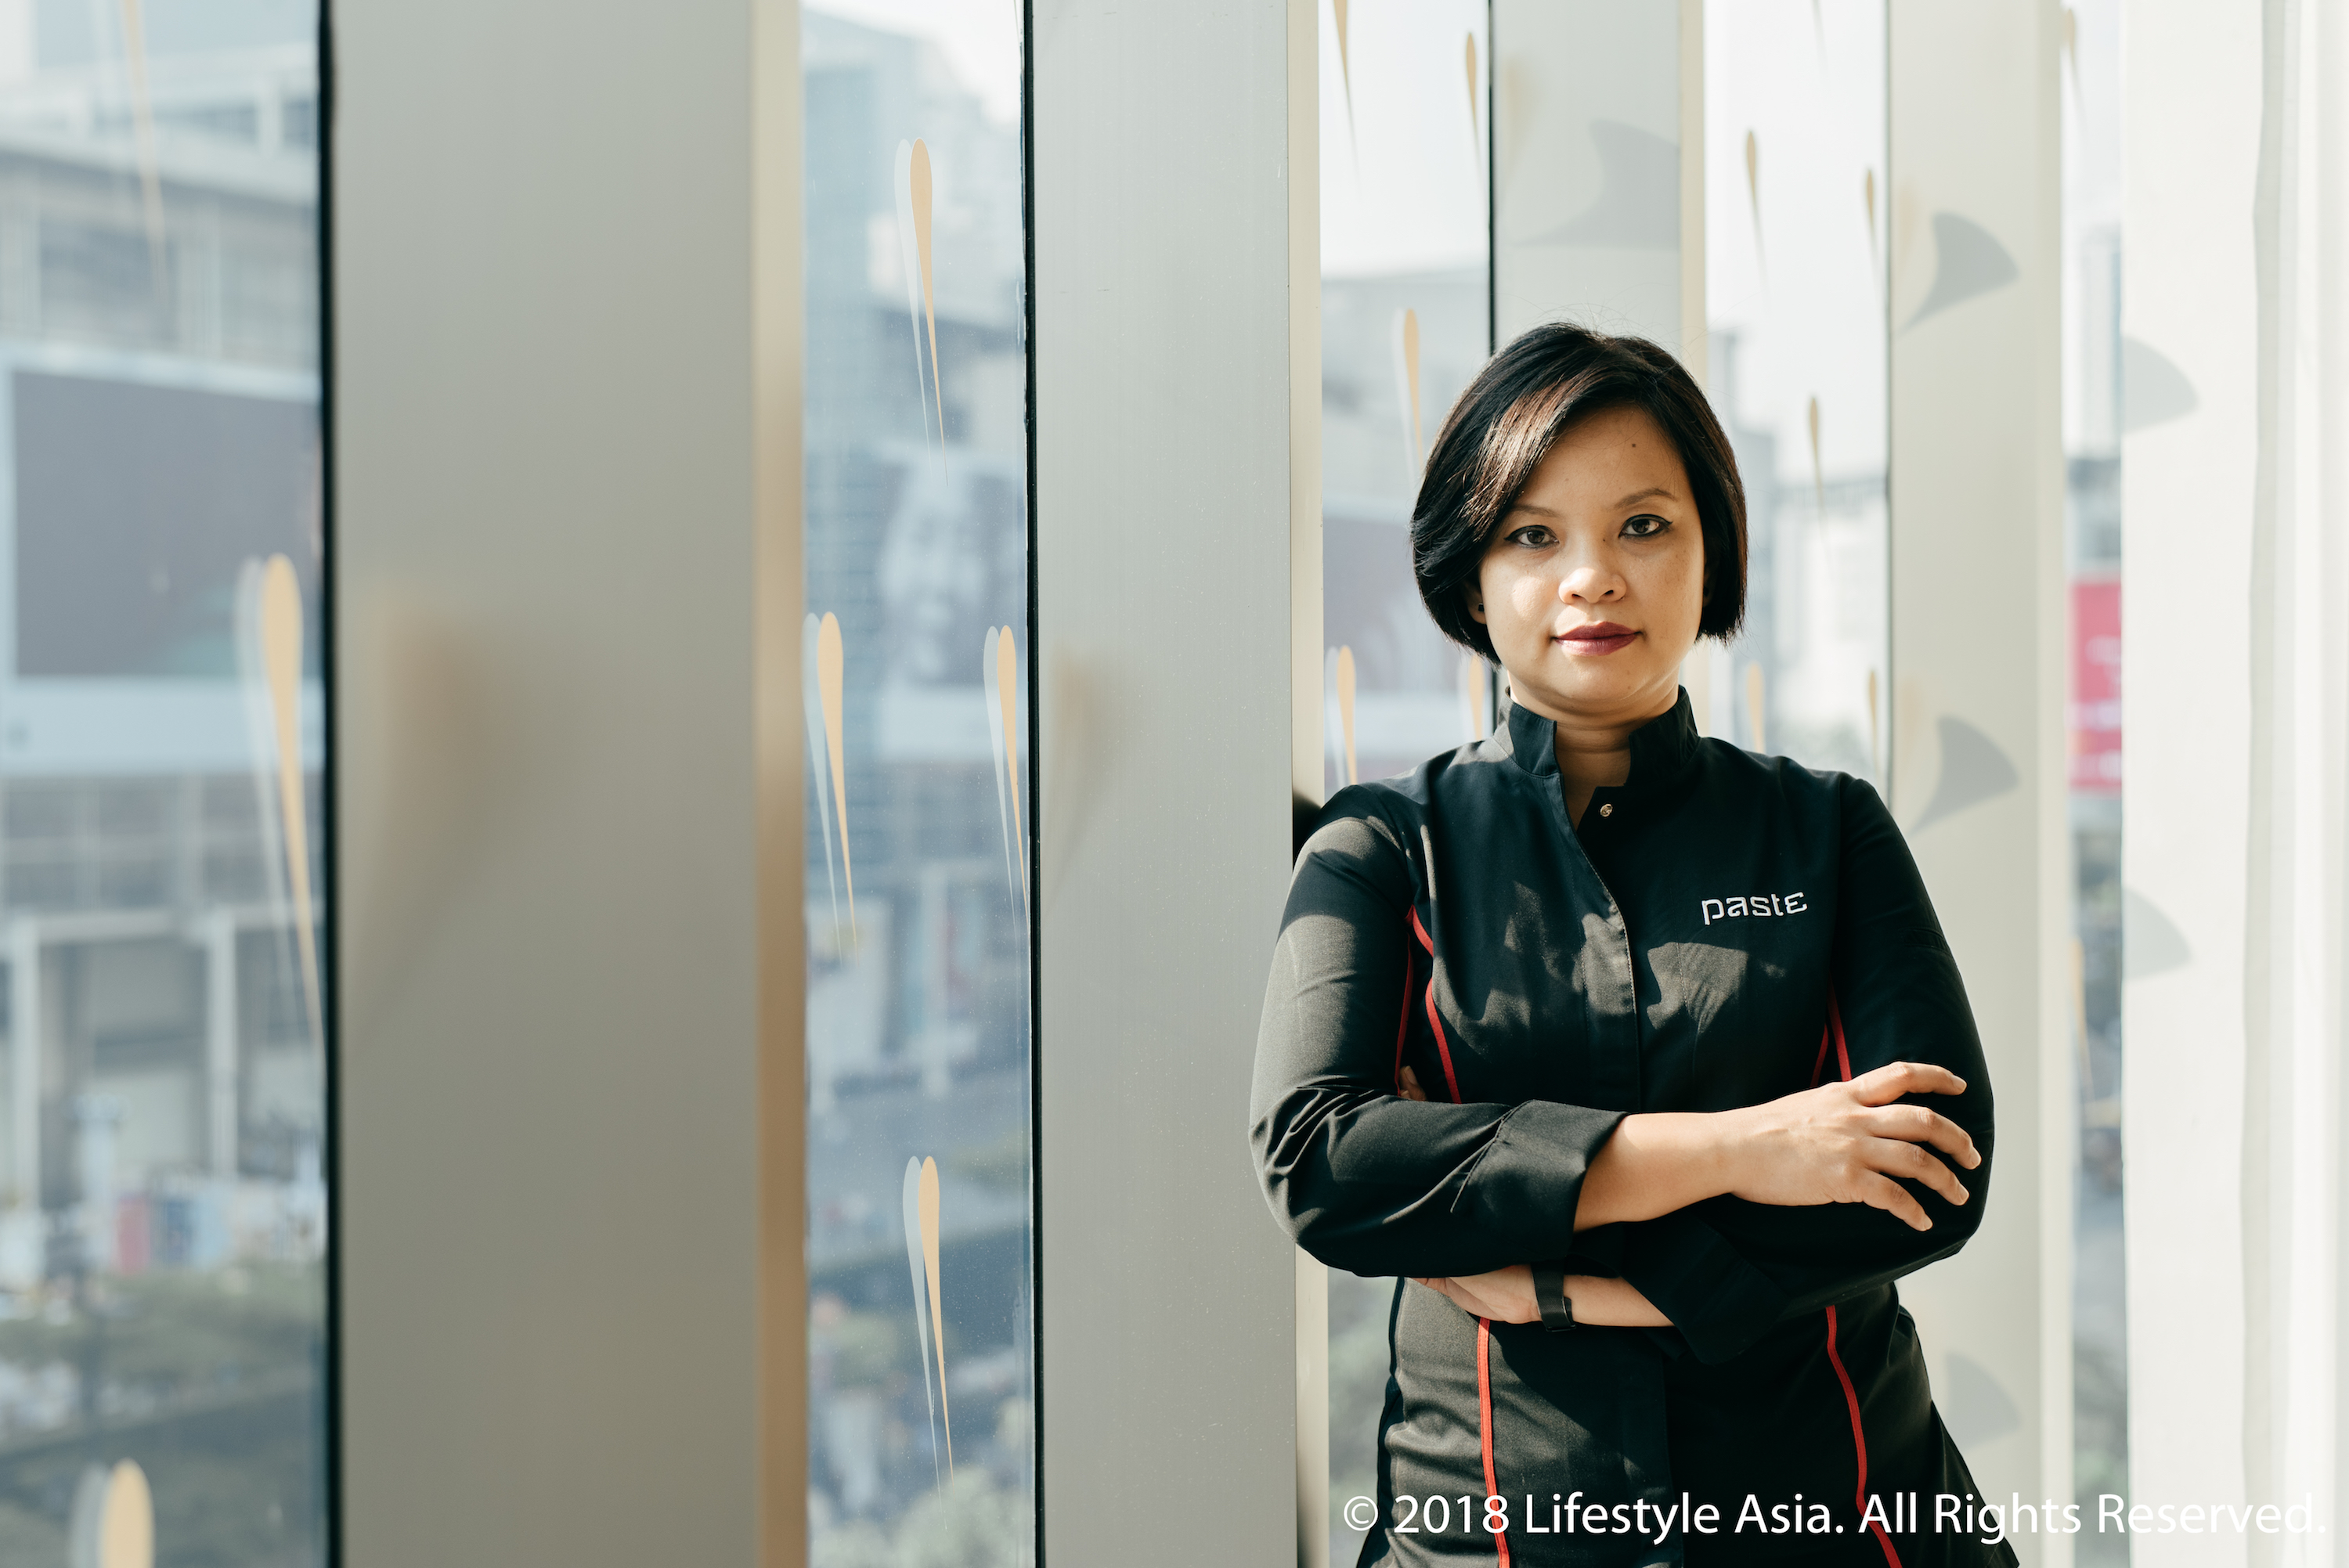 An exclusive interview with Asia's Best Female Chef, Bee Satongun